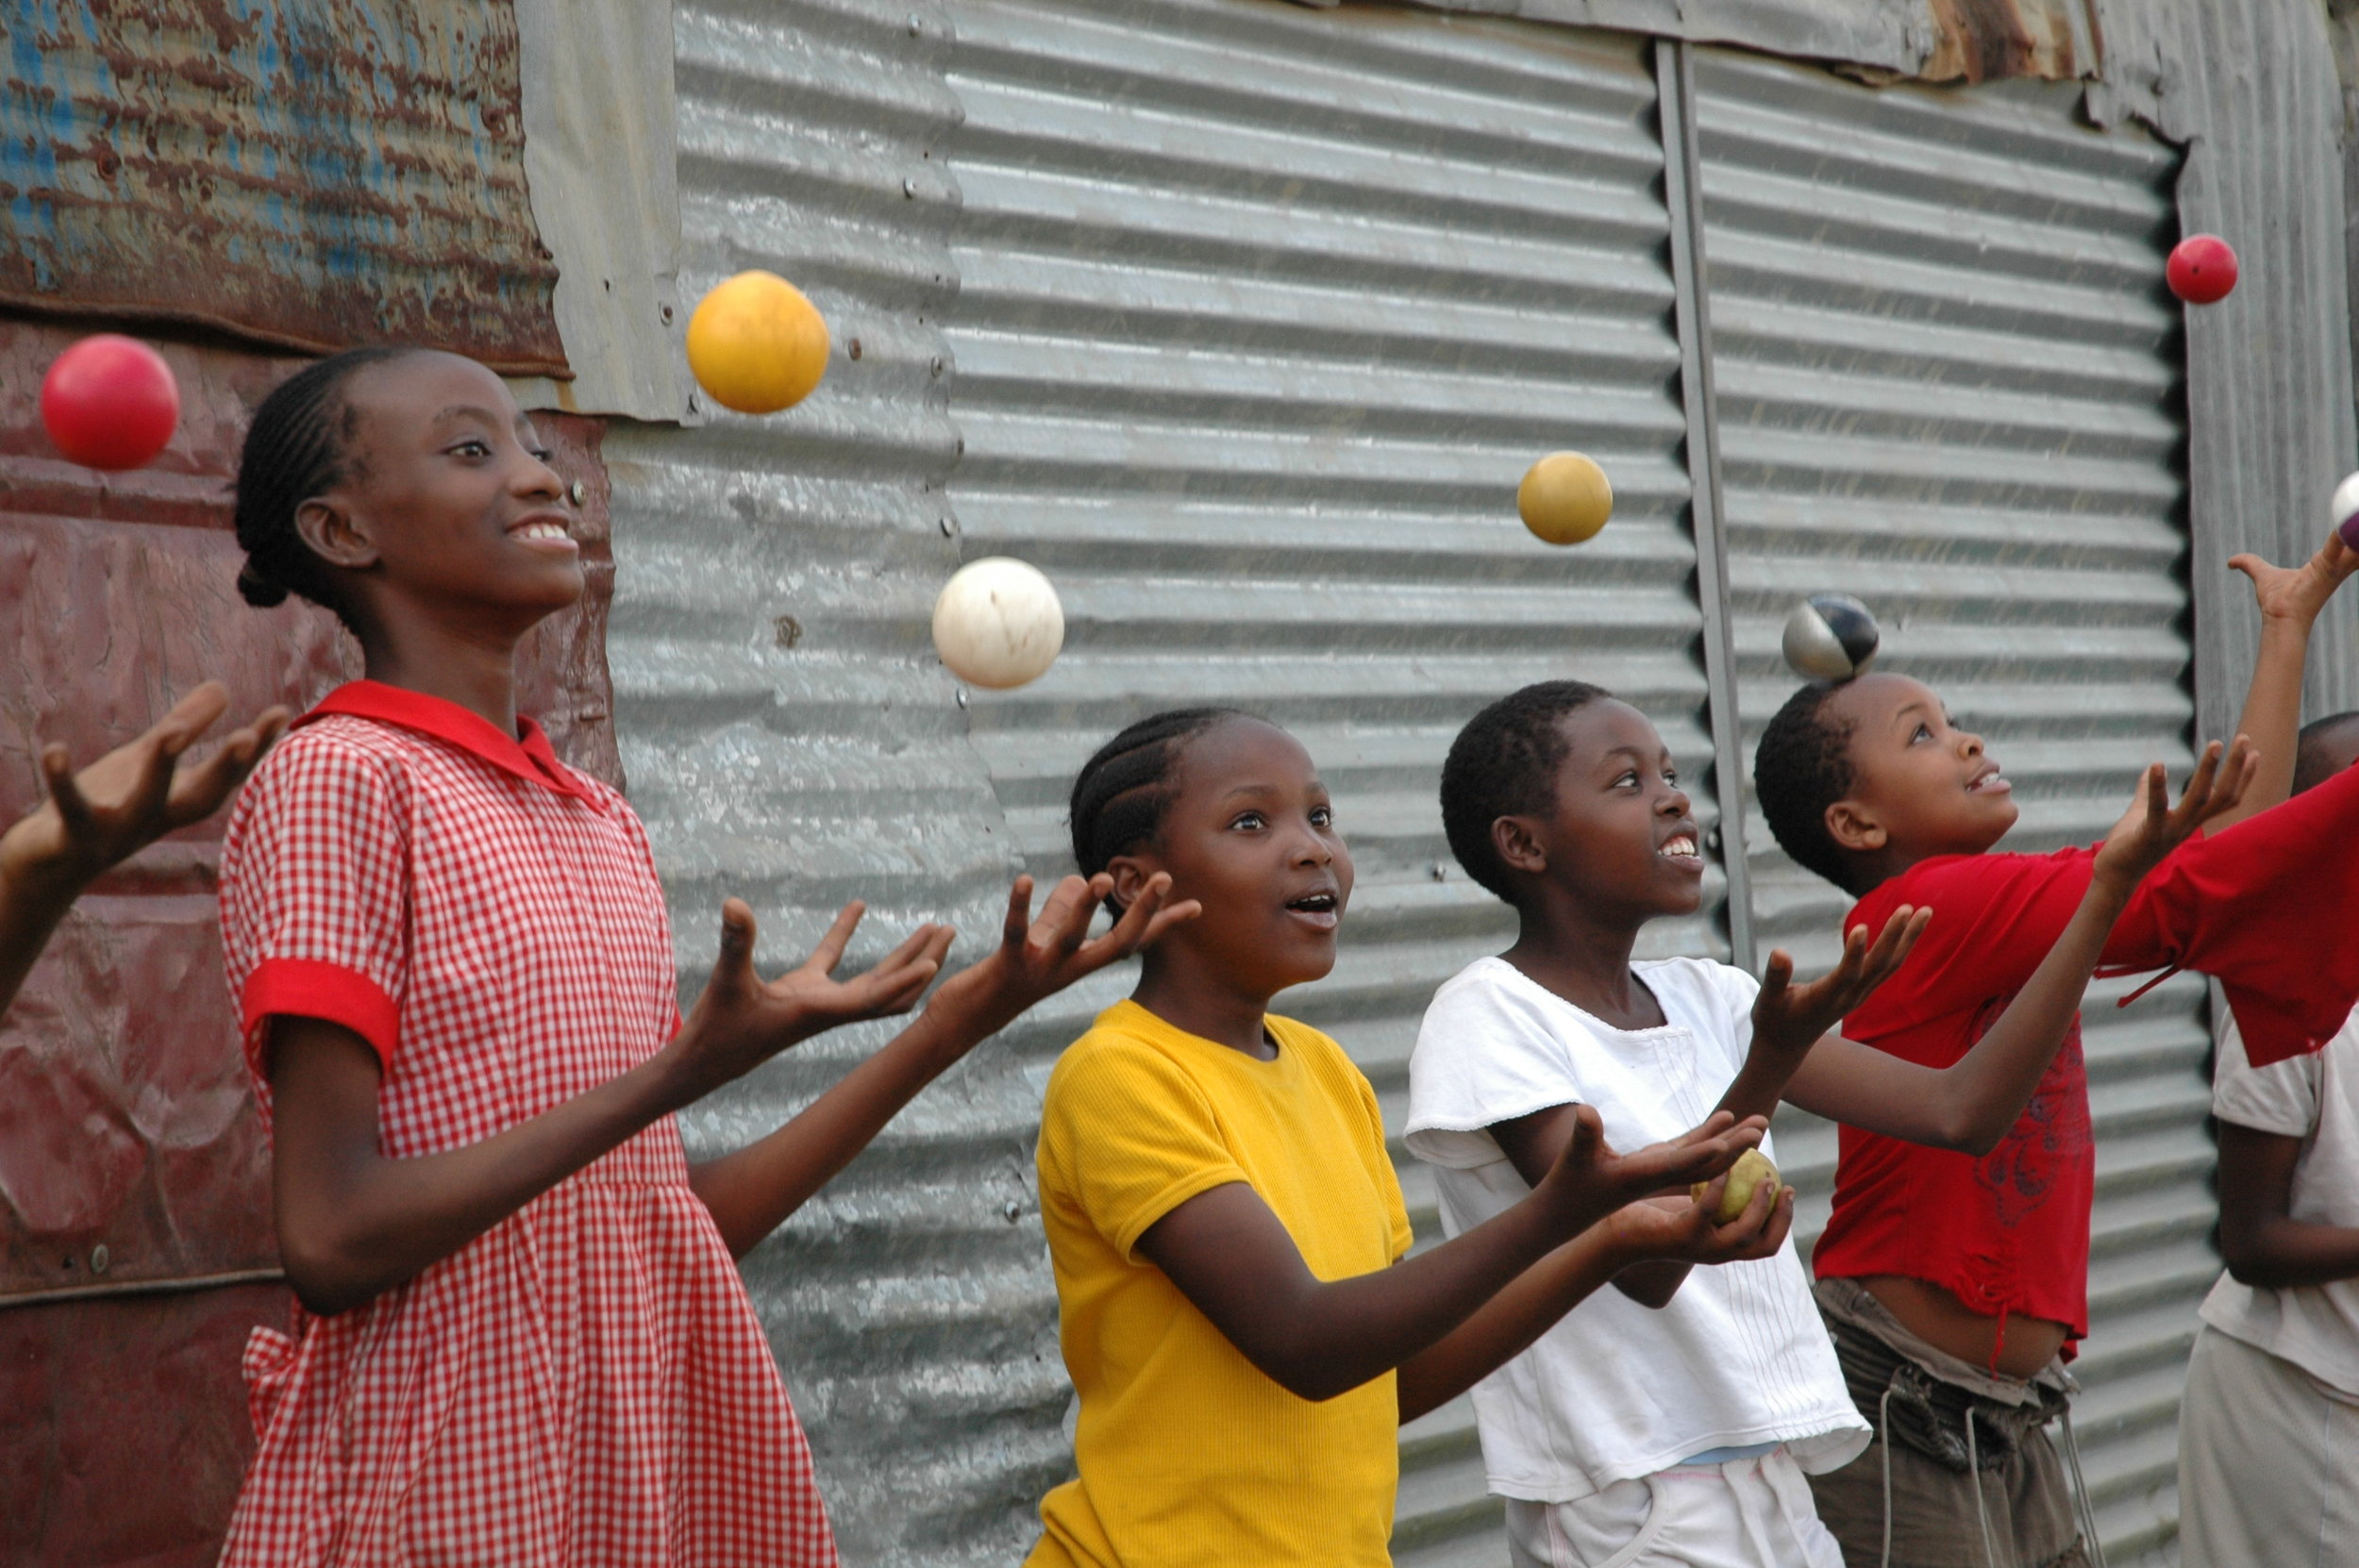 CIRCUS STUDENTS SOON GET TO GRIPS WITH JUGGLING!